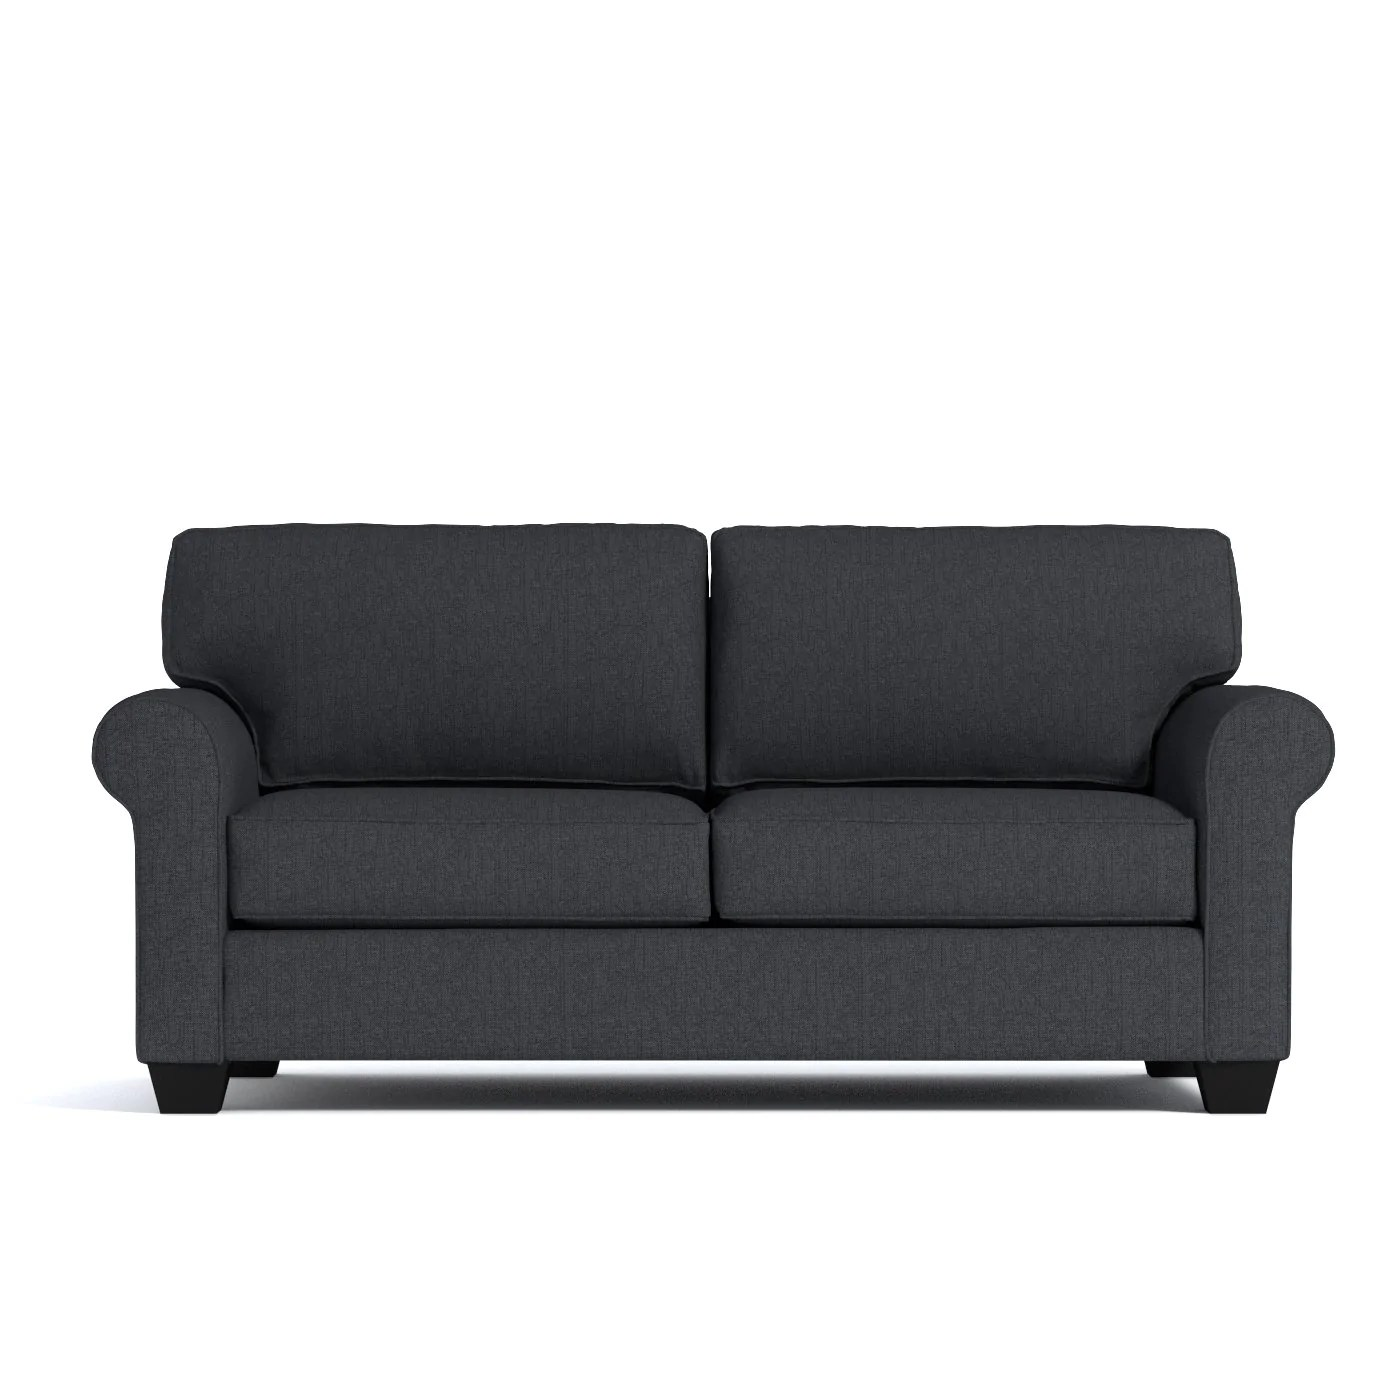 Sofa Open Box Lafayette Loveseat In Charcoal Clearance